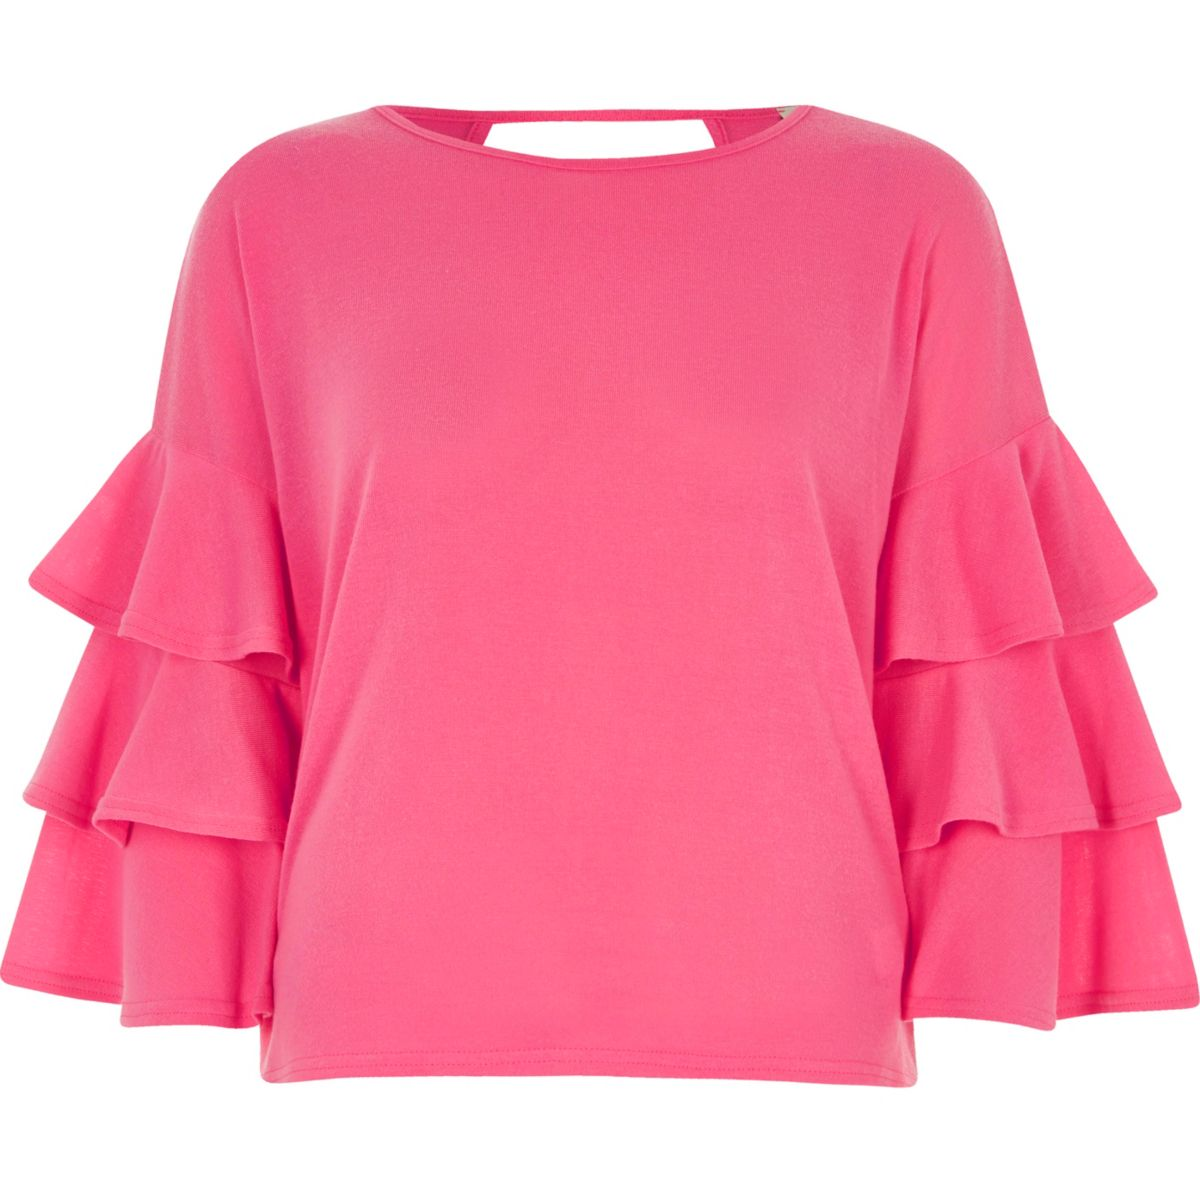 River Island Pink Frill Sleeve Top